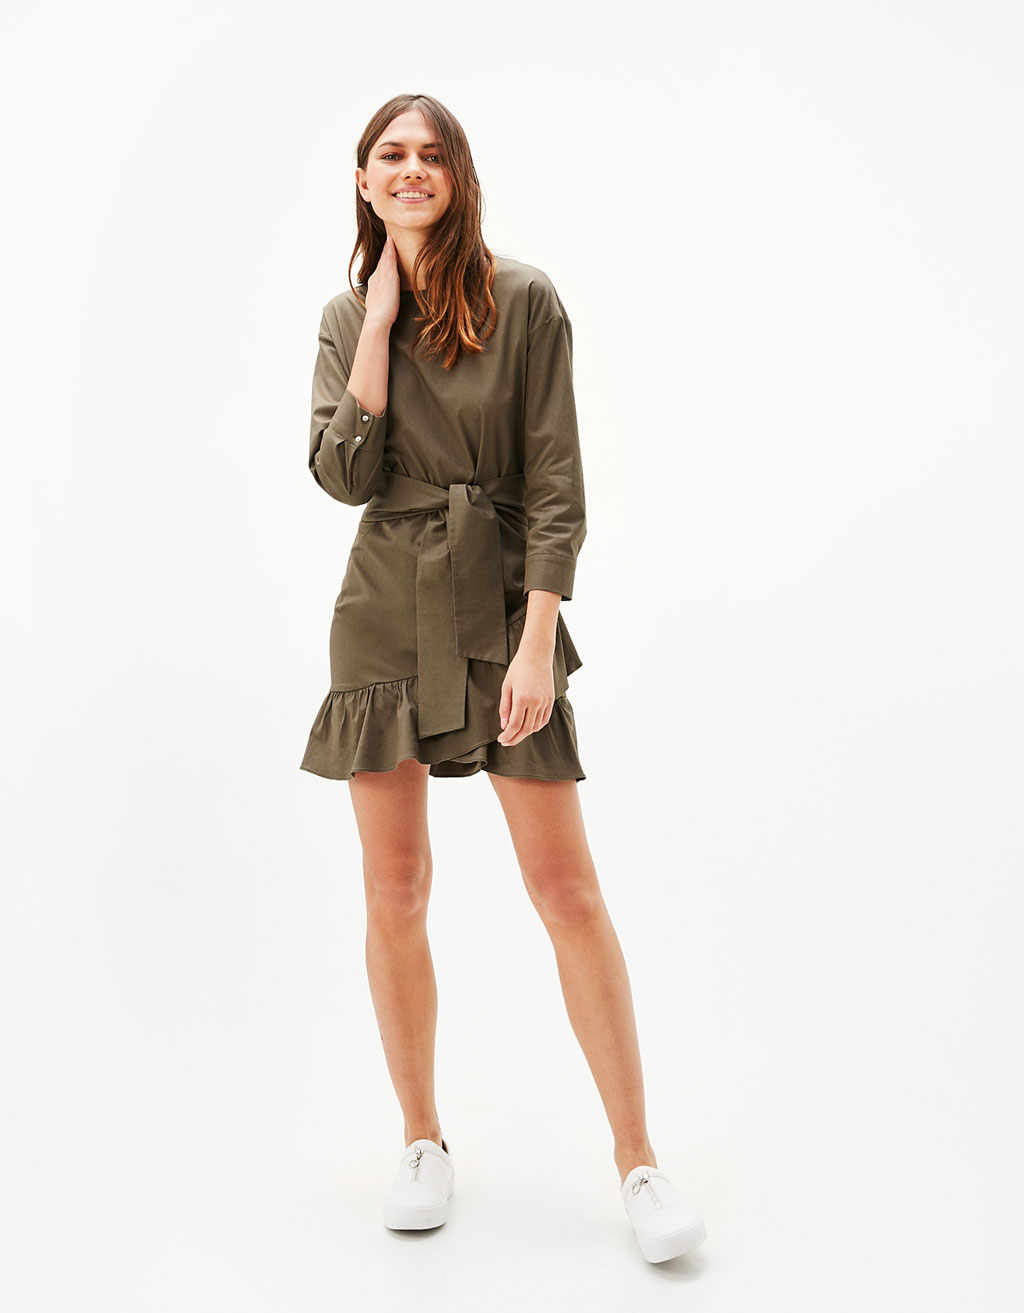 Trench-style dress with 3/4 length sleeves and frills